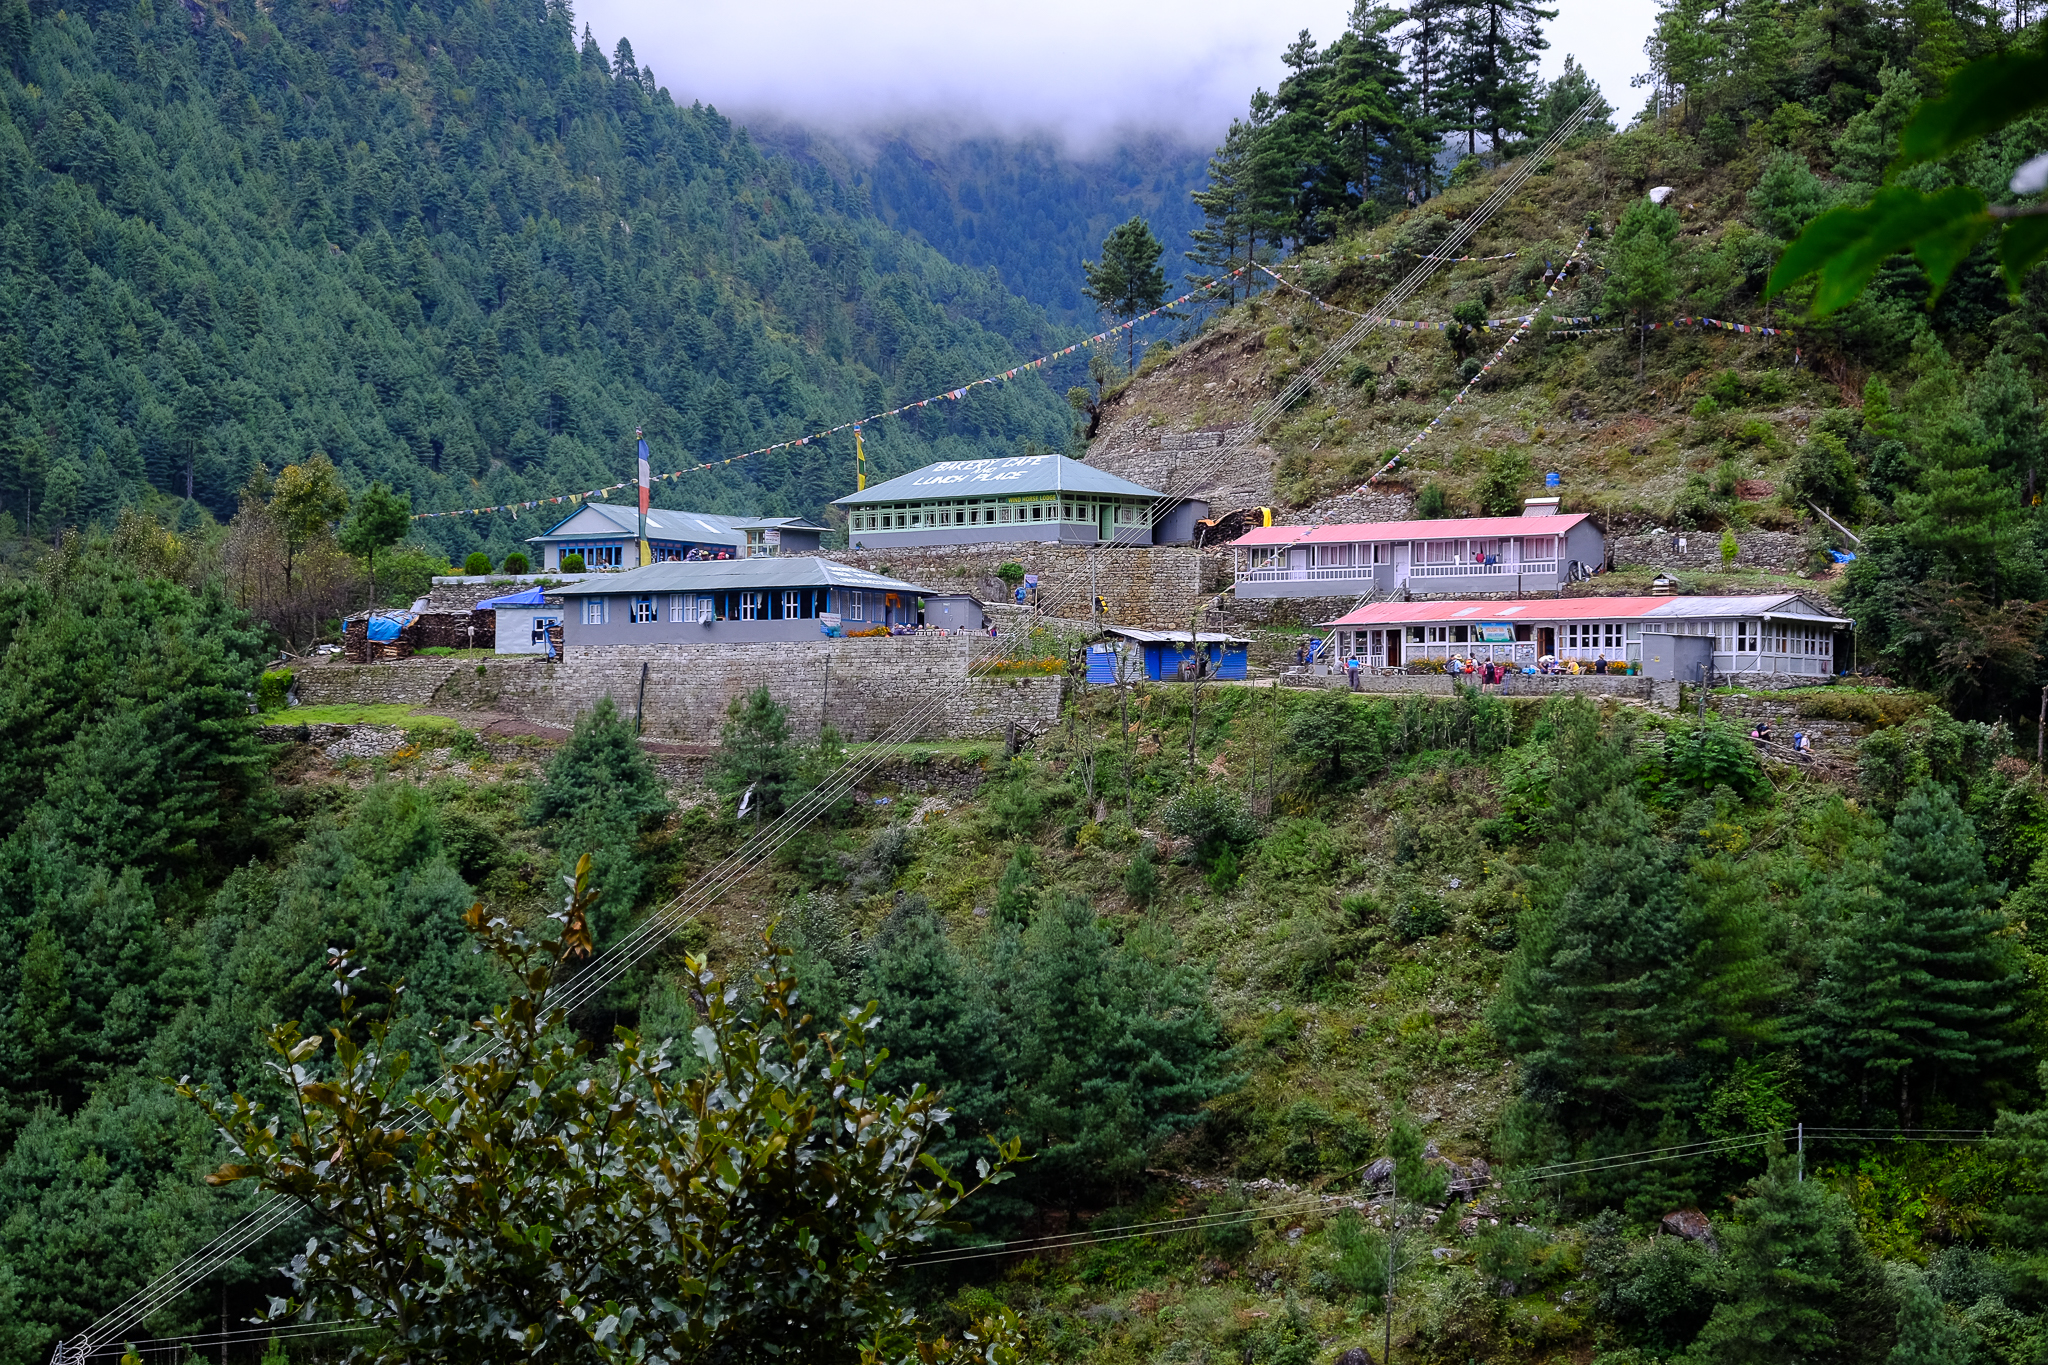 One of the many villages scattered throughout the Khumbu region.